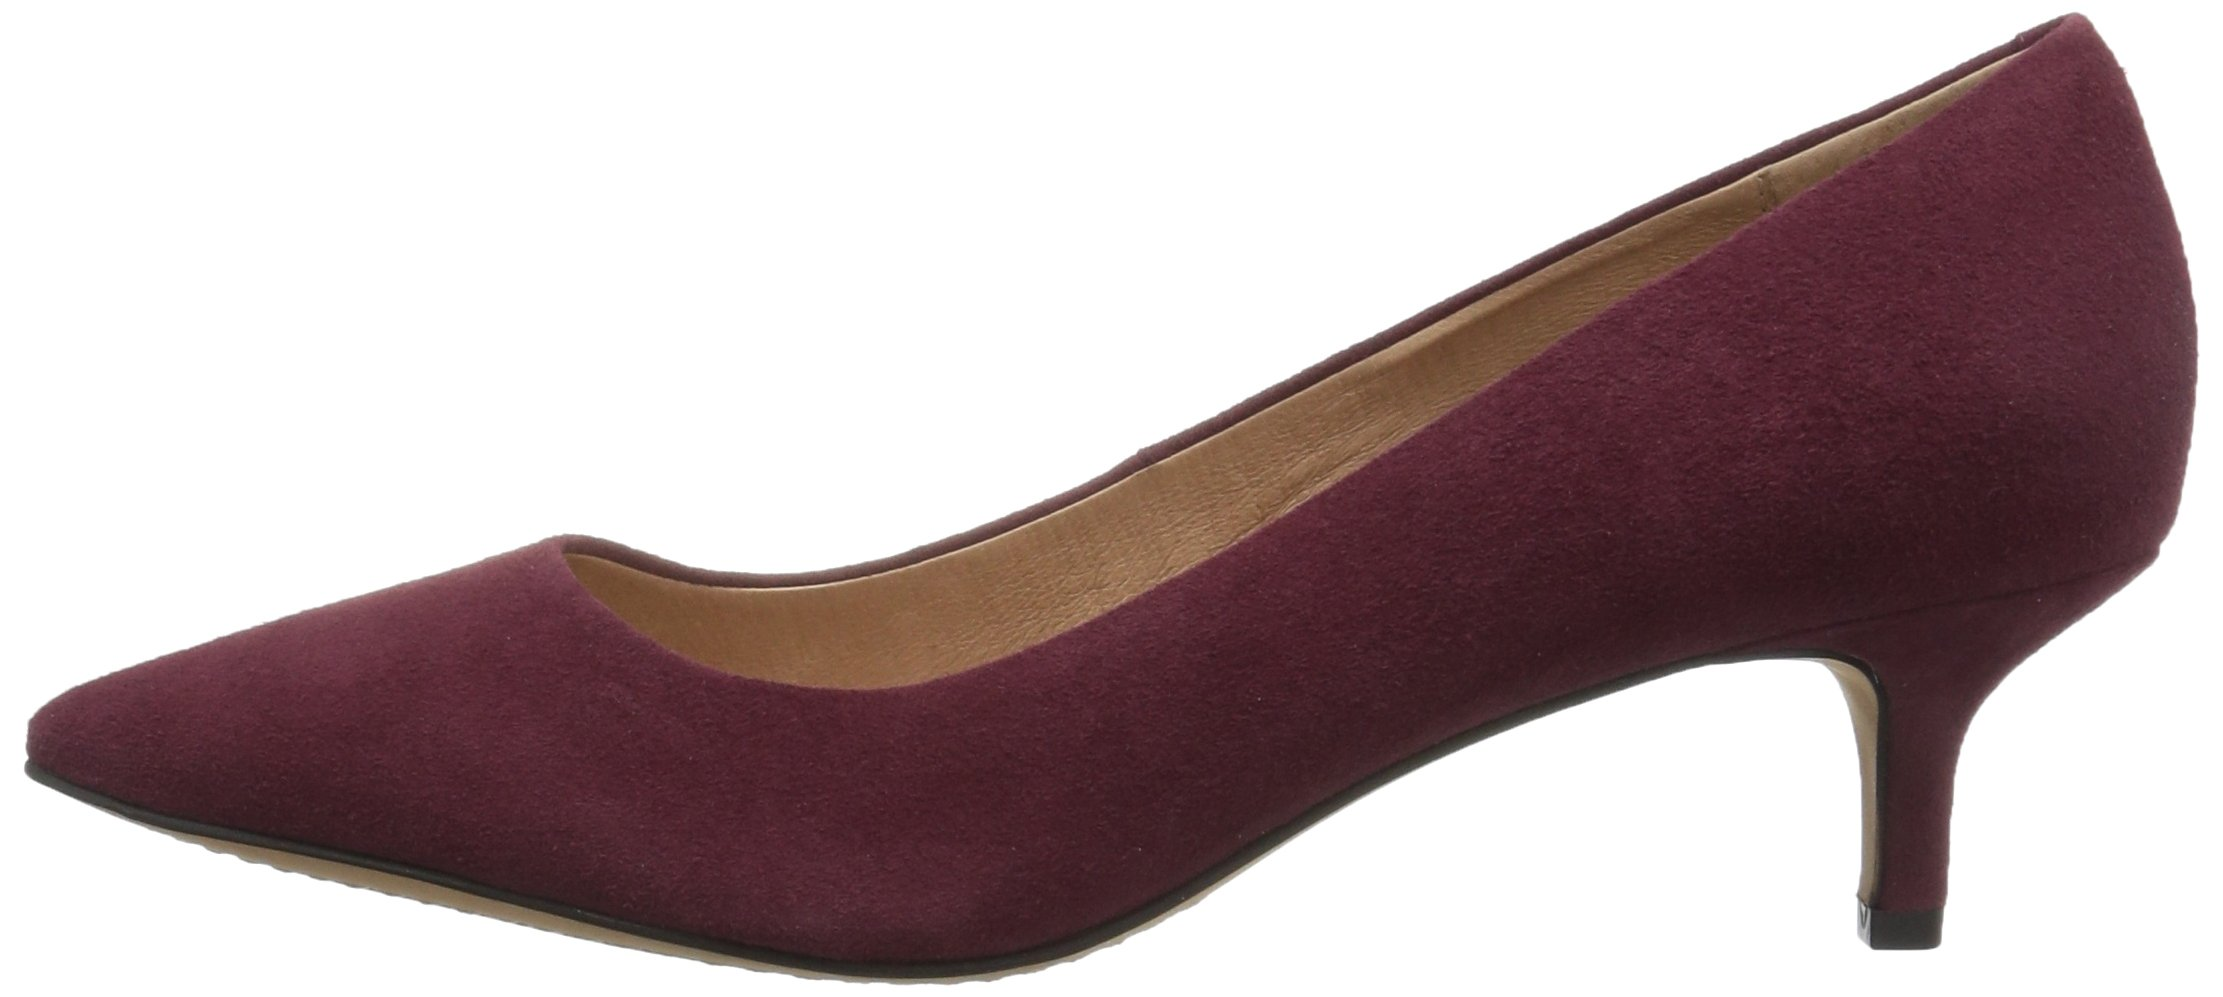 206 Collective Women's Queen Anne Kitten Heel Dress Pump, Burgundy, 8.5 B US by 206 Collective (Image #5)